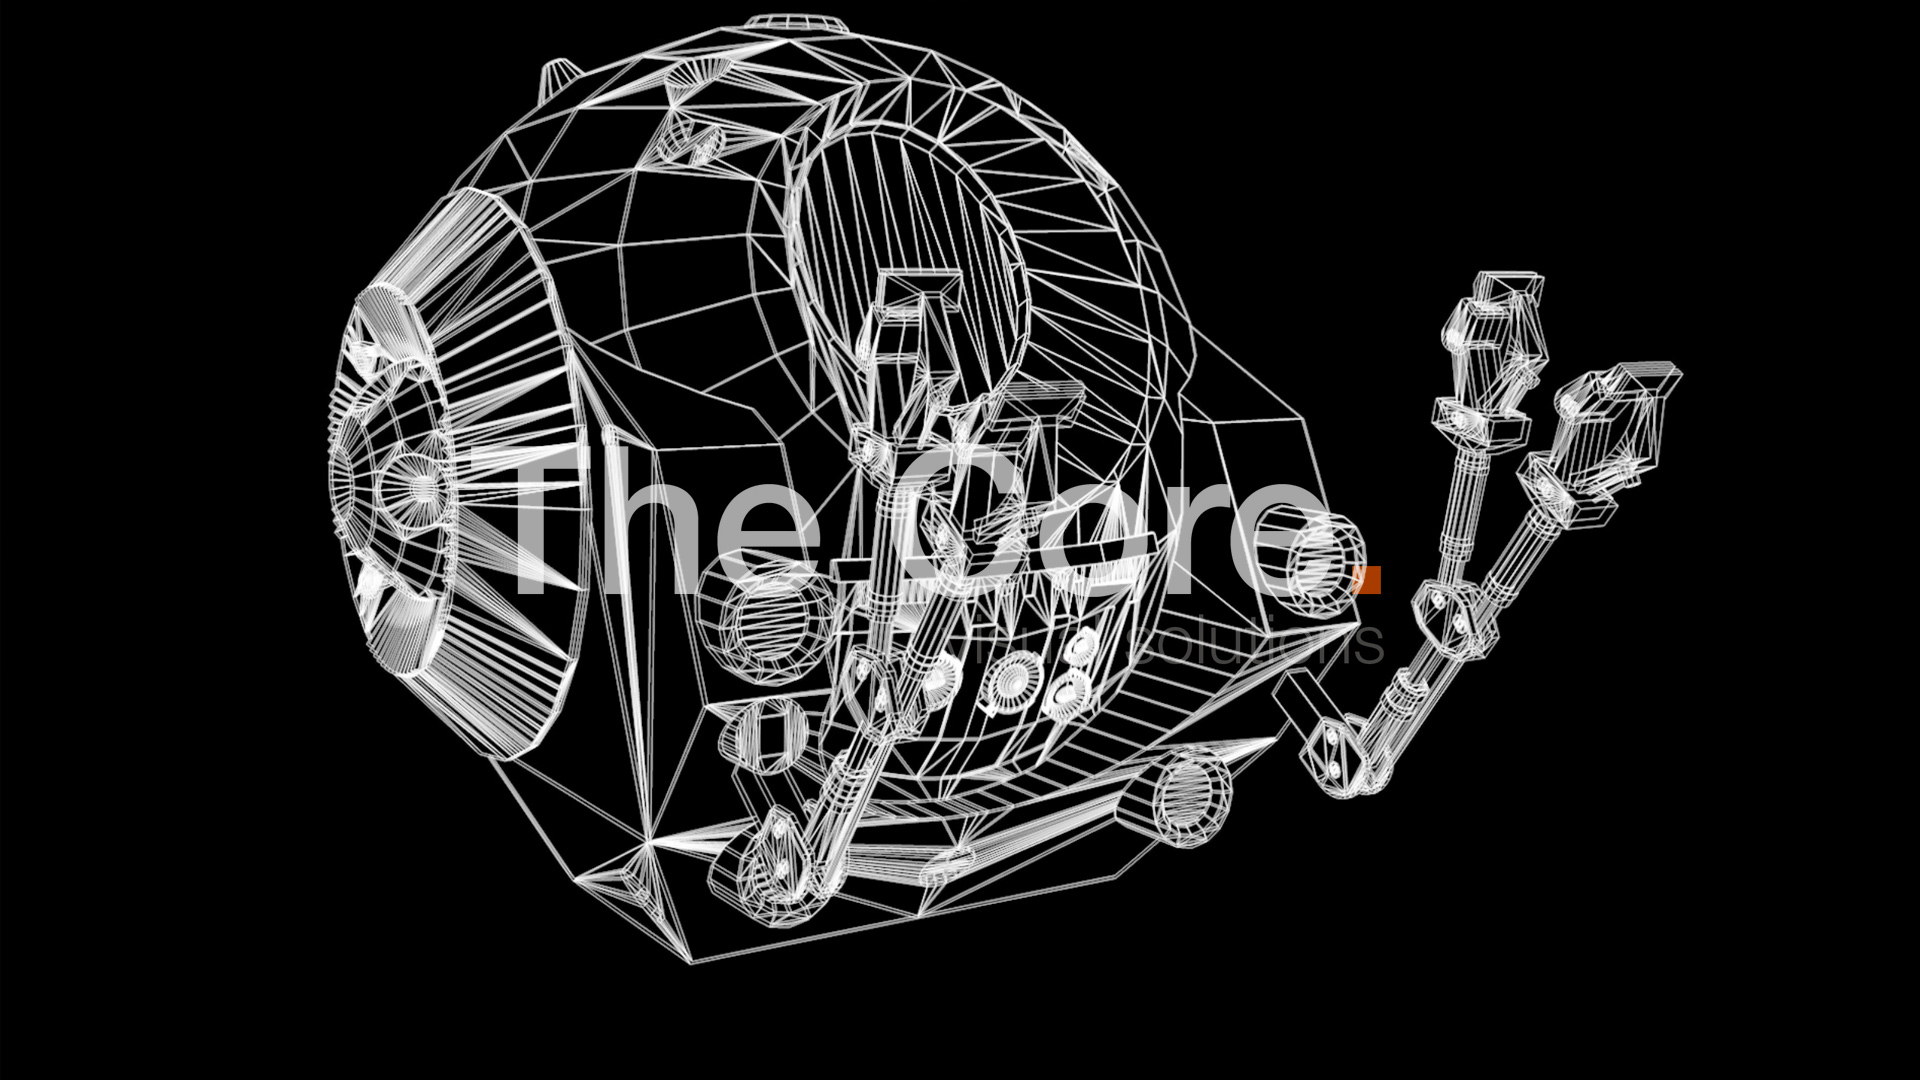 00263-SPACE-11-SHIP-WIRE-STILL-by-The-Core